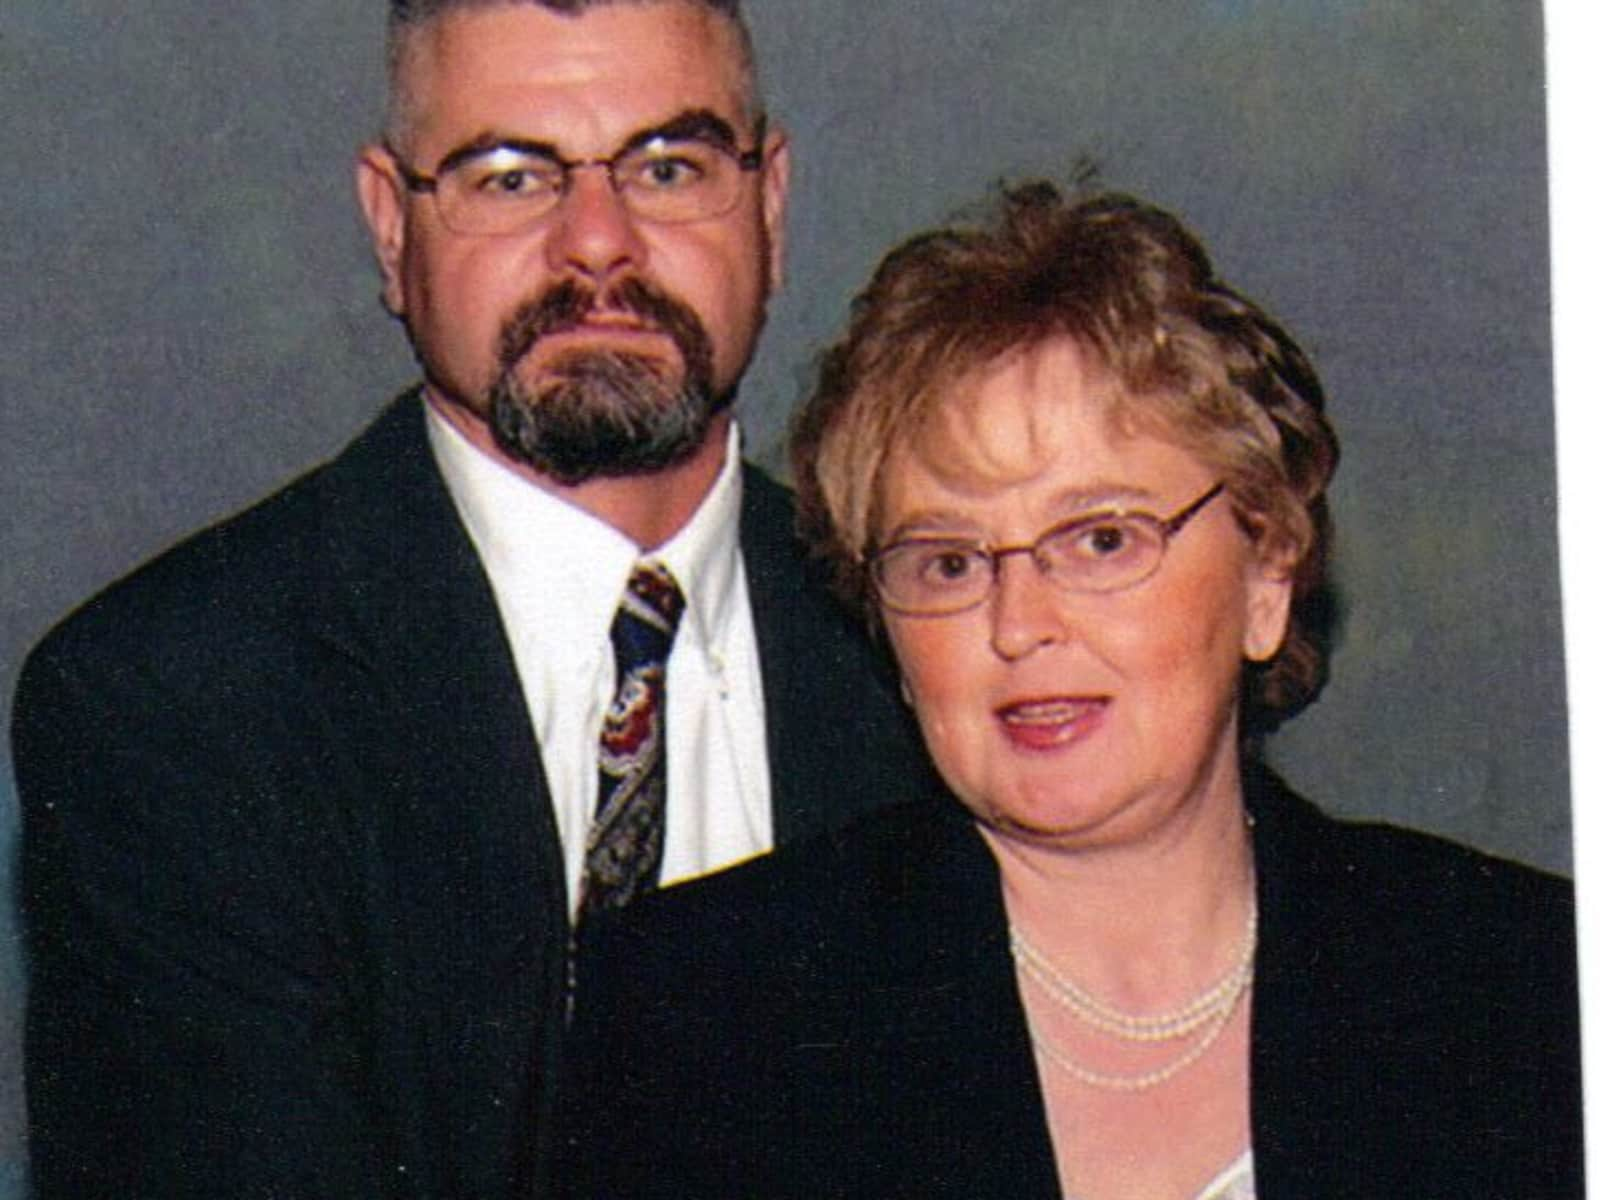 Trish & Douglas from Johnson City, Tennessee, United States